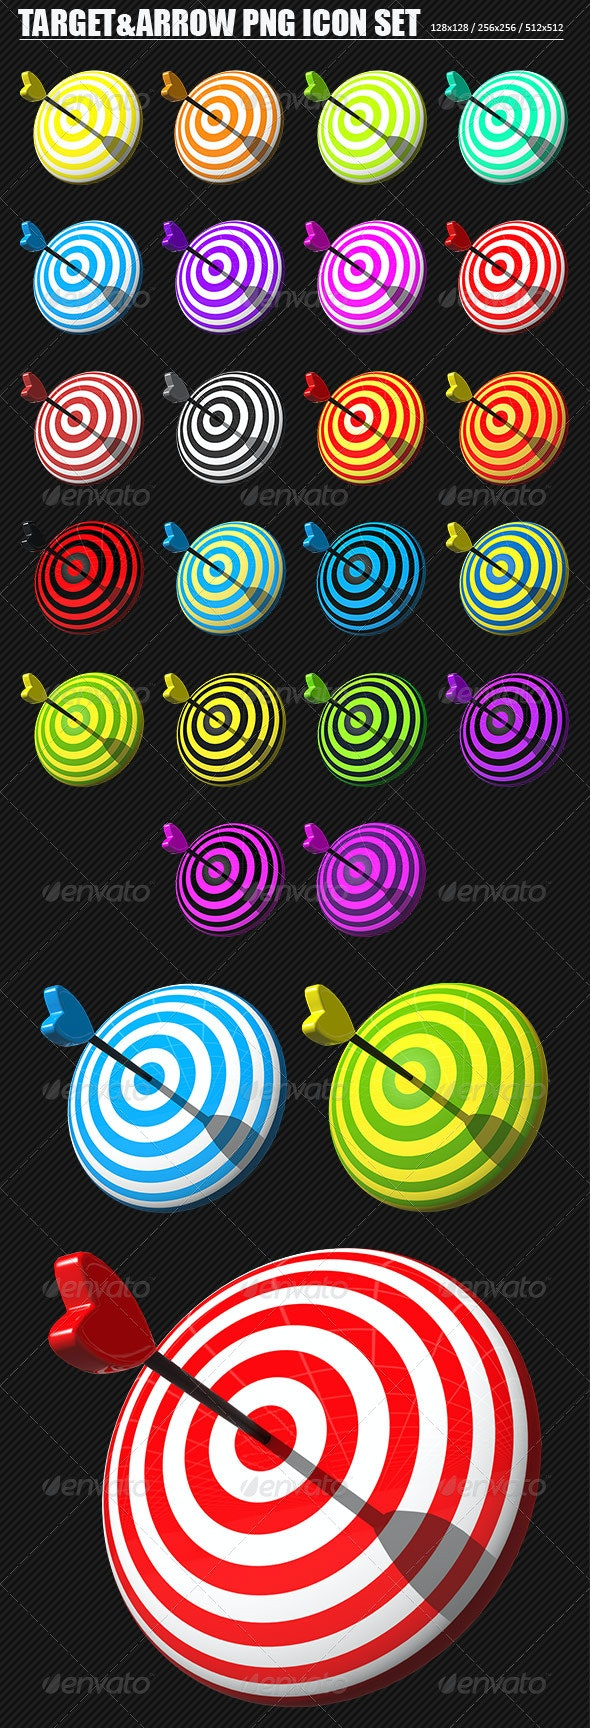 Target And Arrow PNG Icon Set